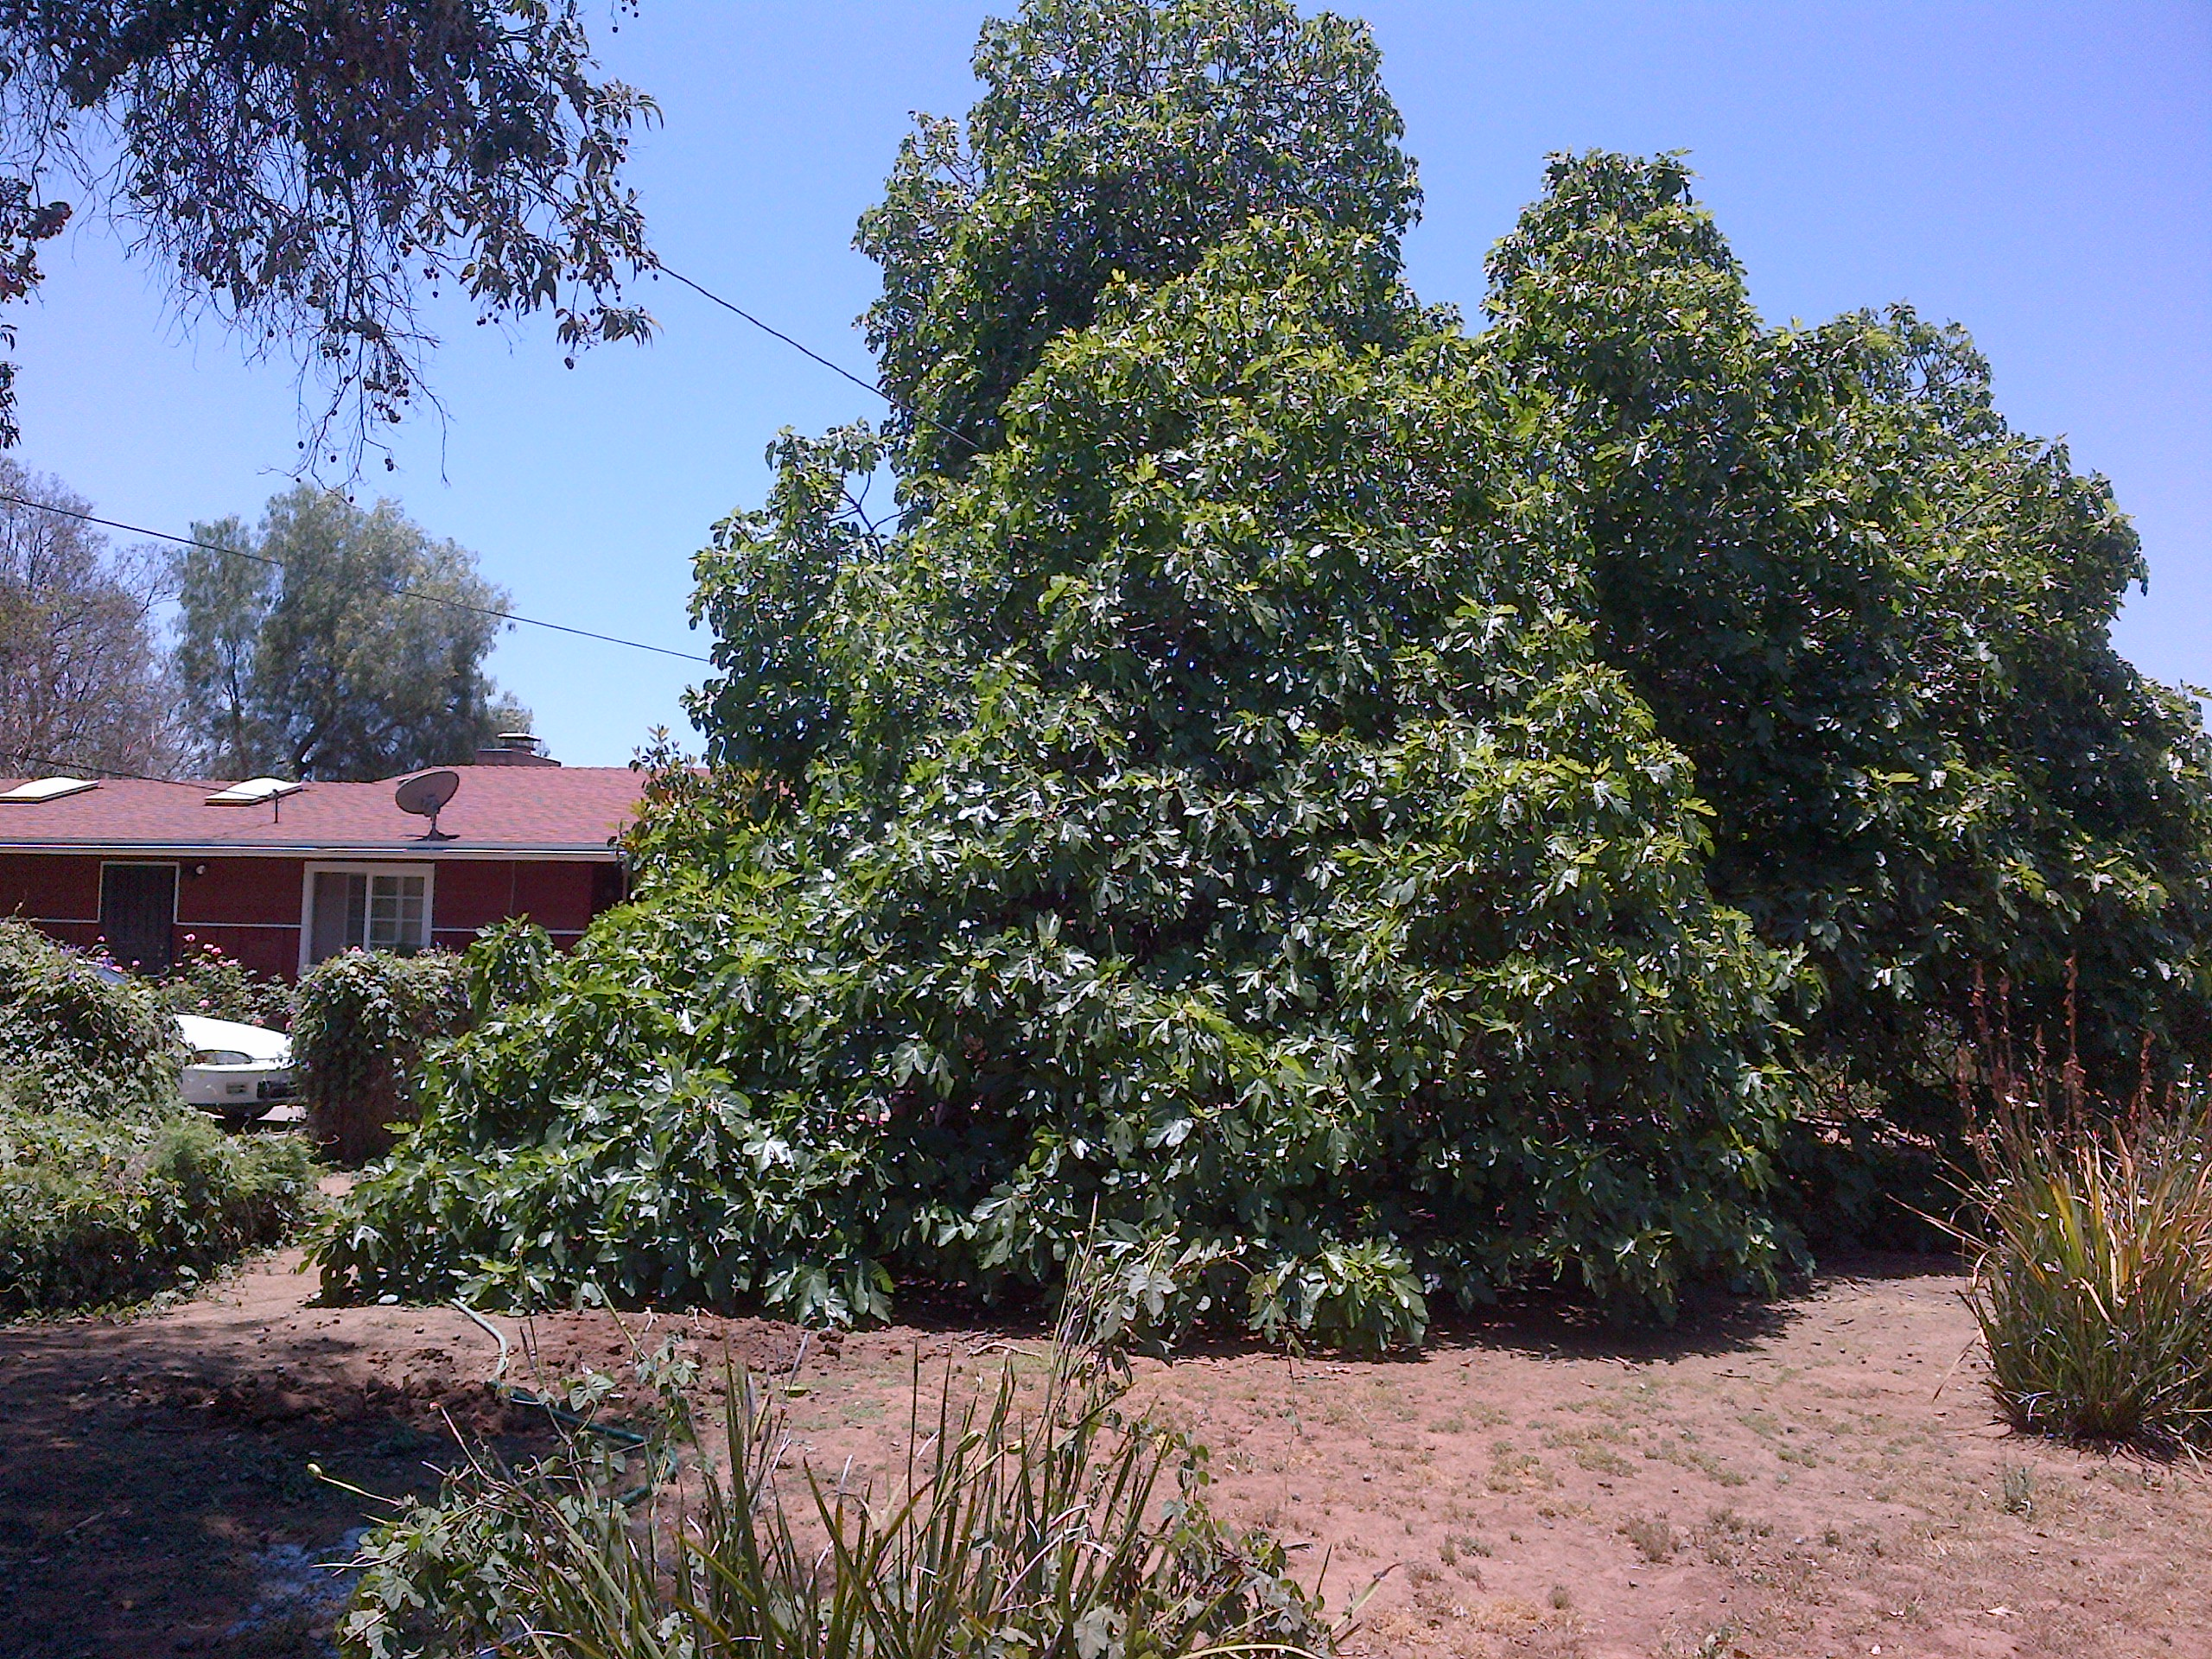 My Mission Fig tree in foreground, avocado trees behind it from Kitty Cooper